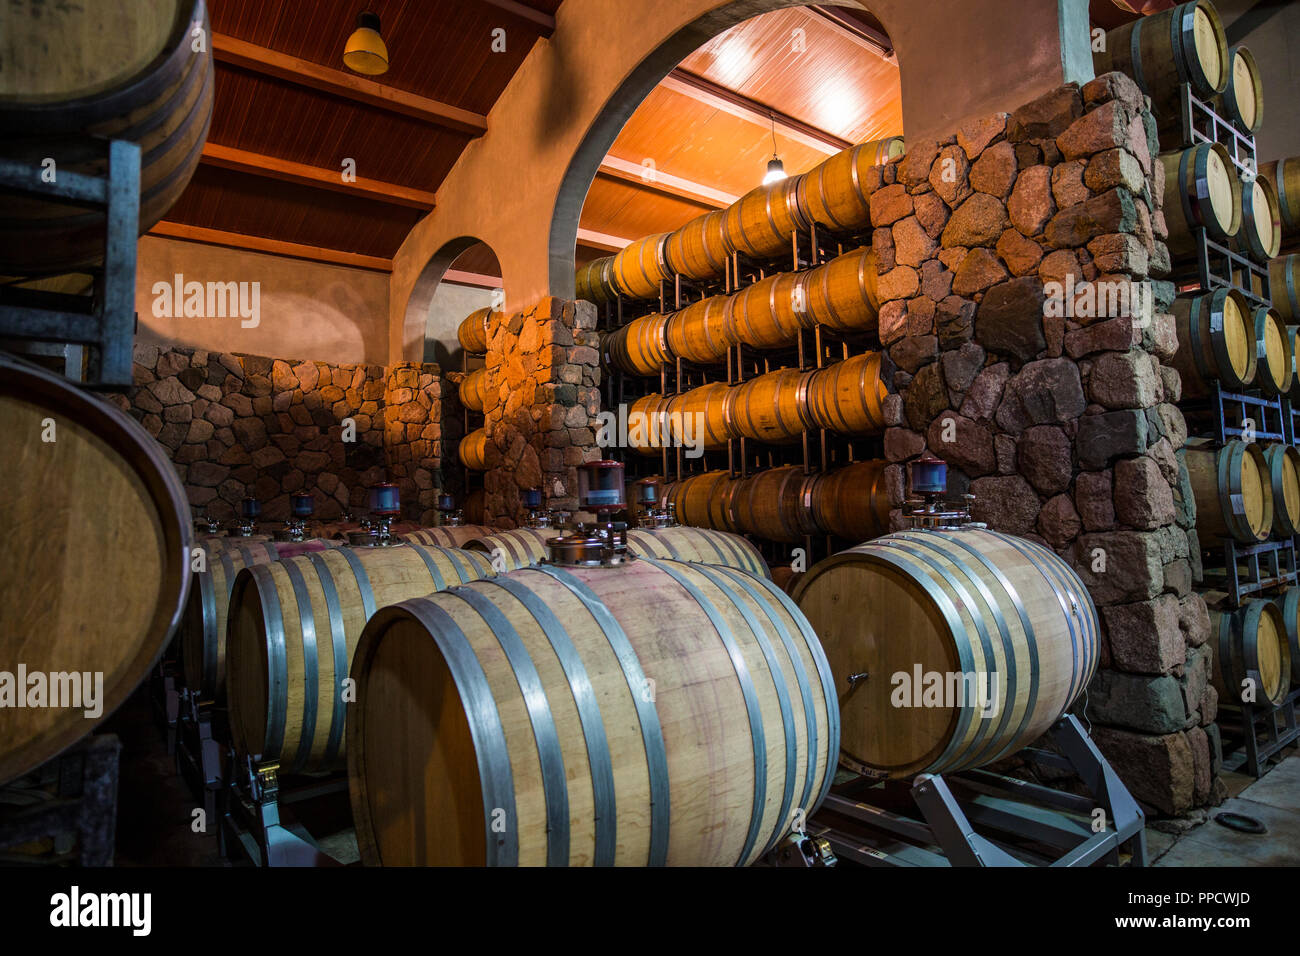 View of wine casks in wine cellar, Mendoza, Argentina - Stock Image